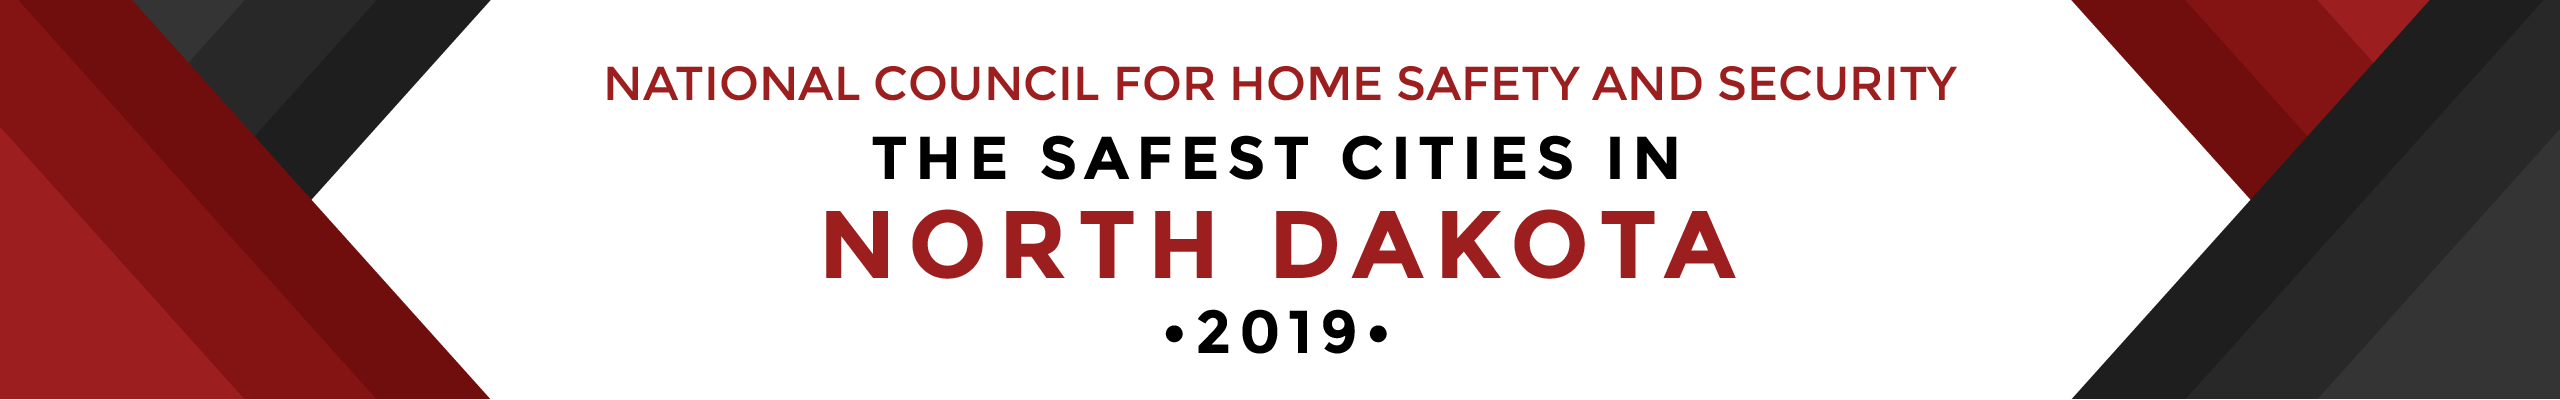 Safest Cities North Dakota - header